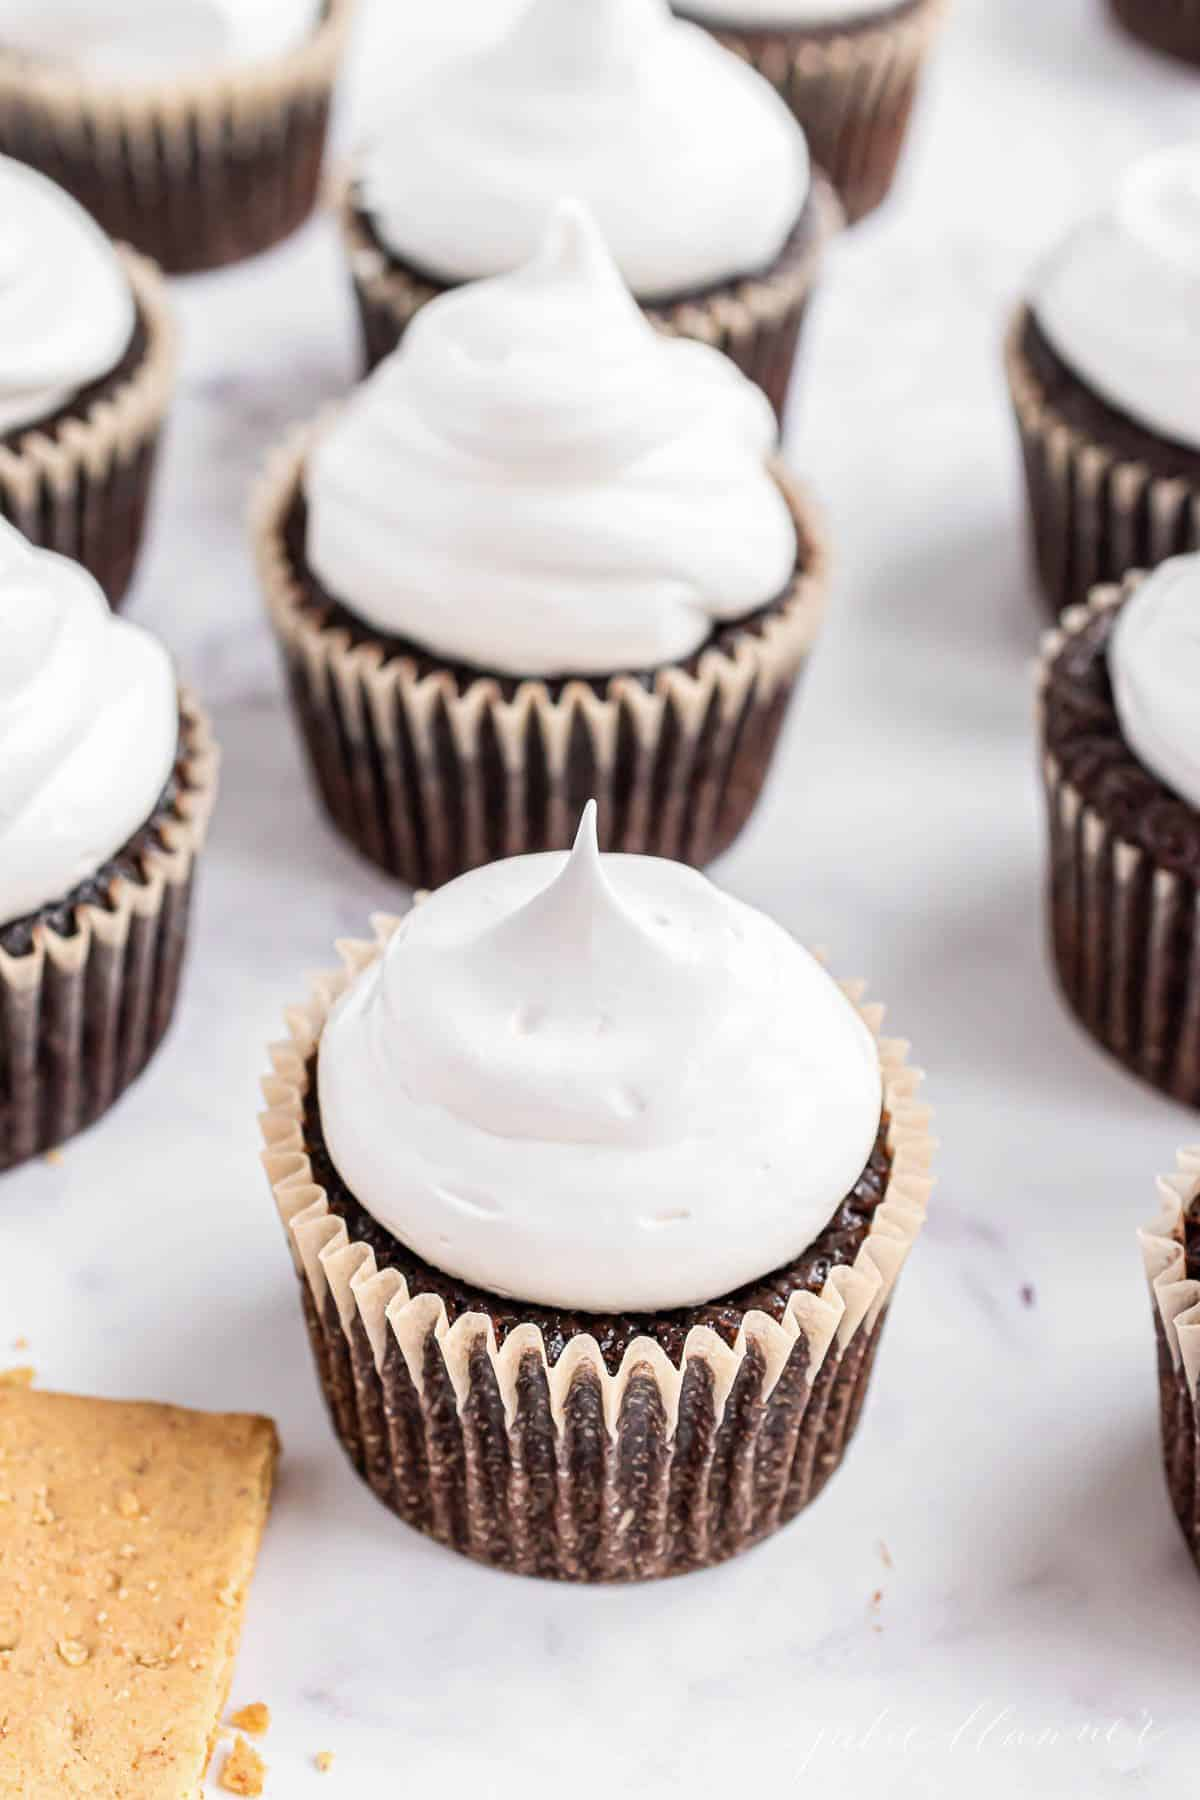 Smores cupcakes topped with marshmallow frosting laid out on a marble surface.